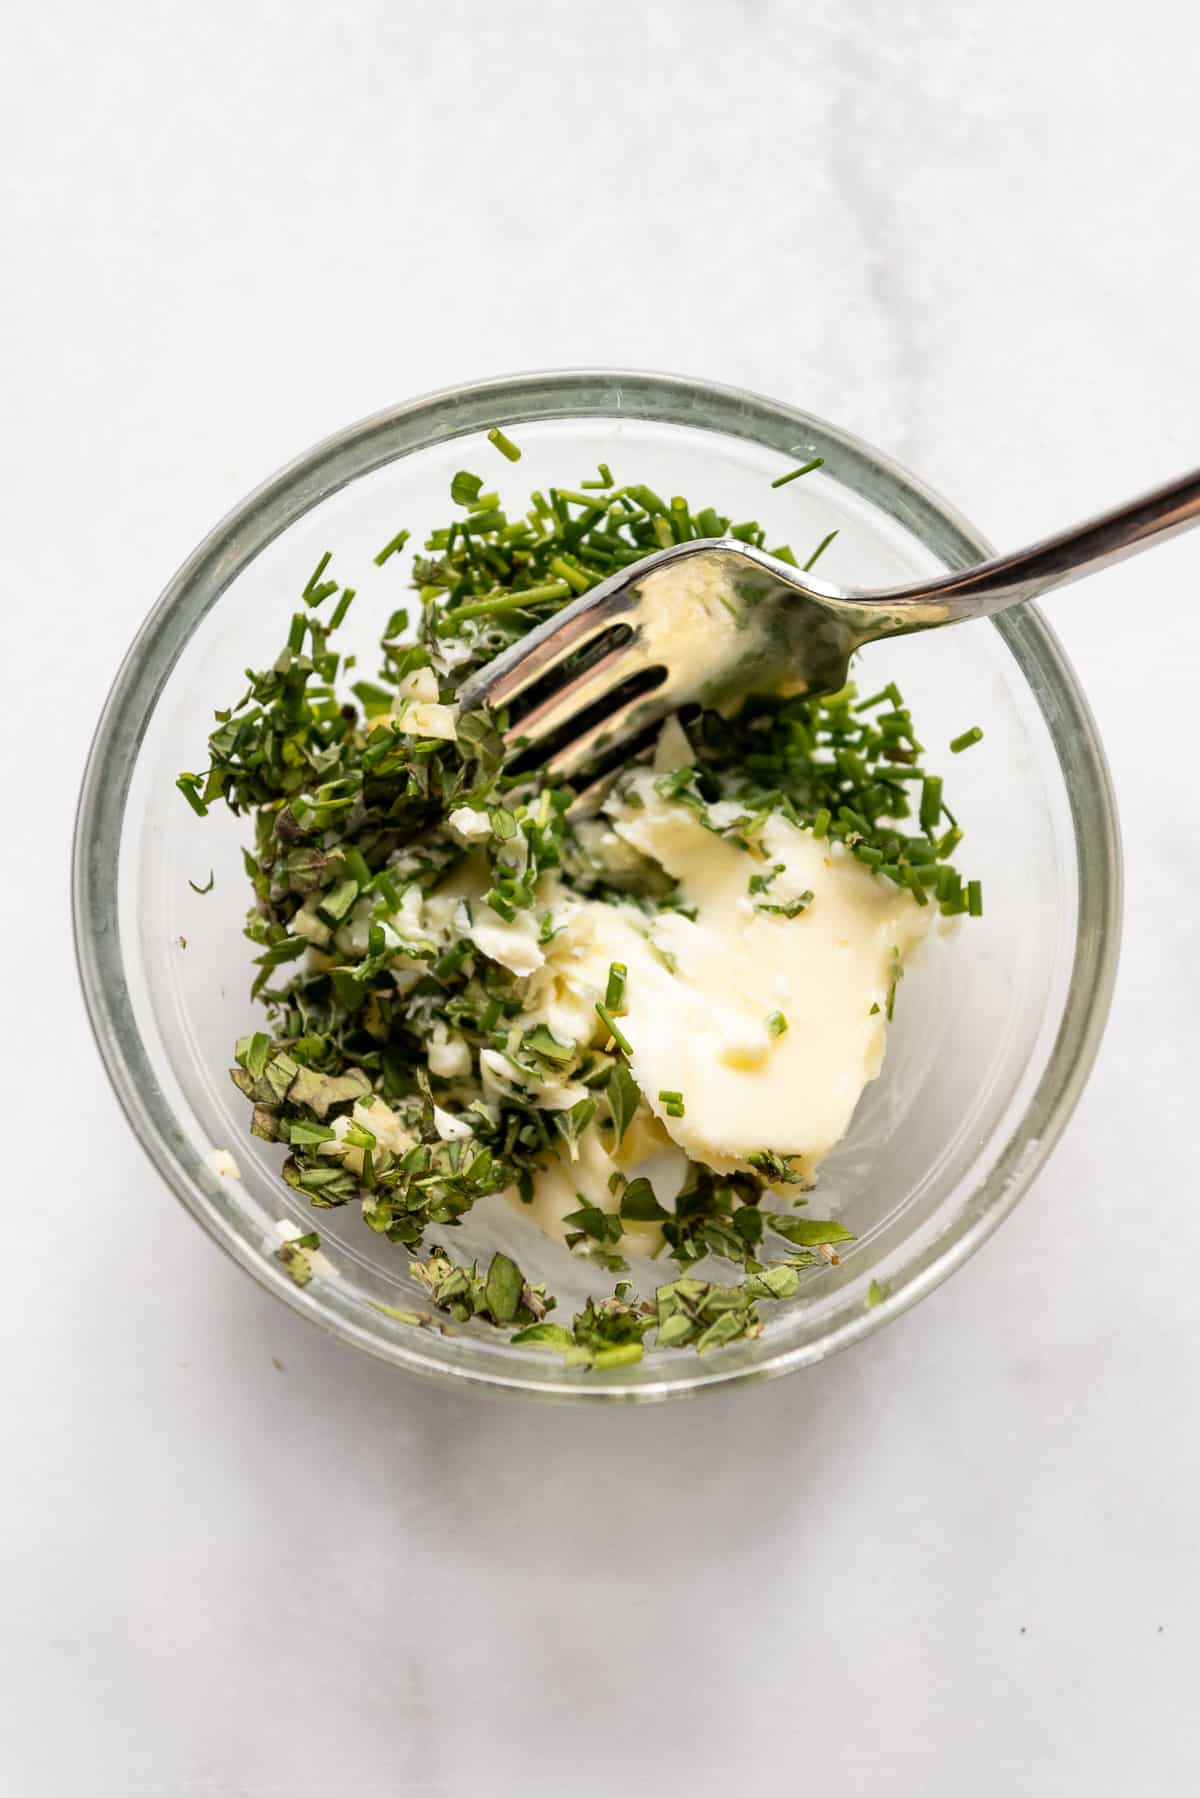 Combining butter, herbs, and garlic in a bowl with a fork.